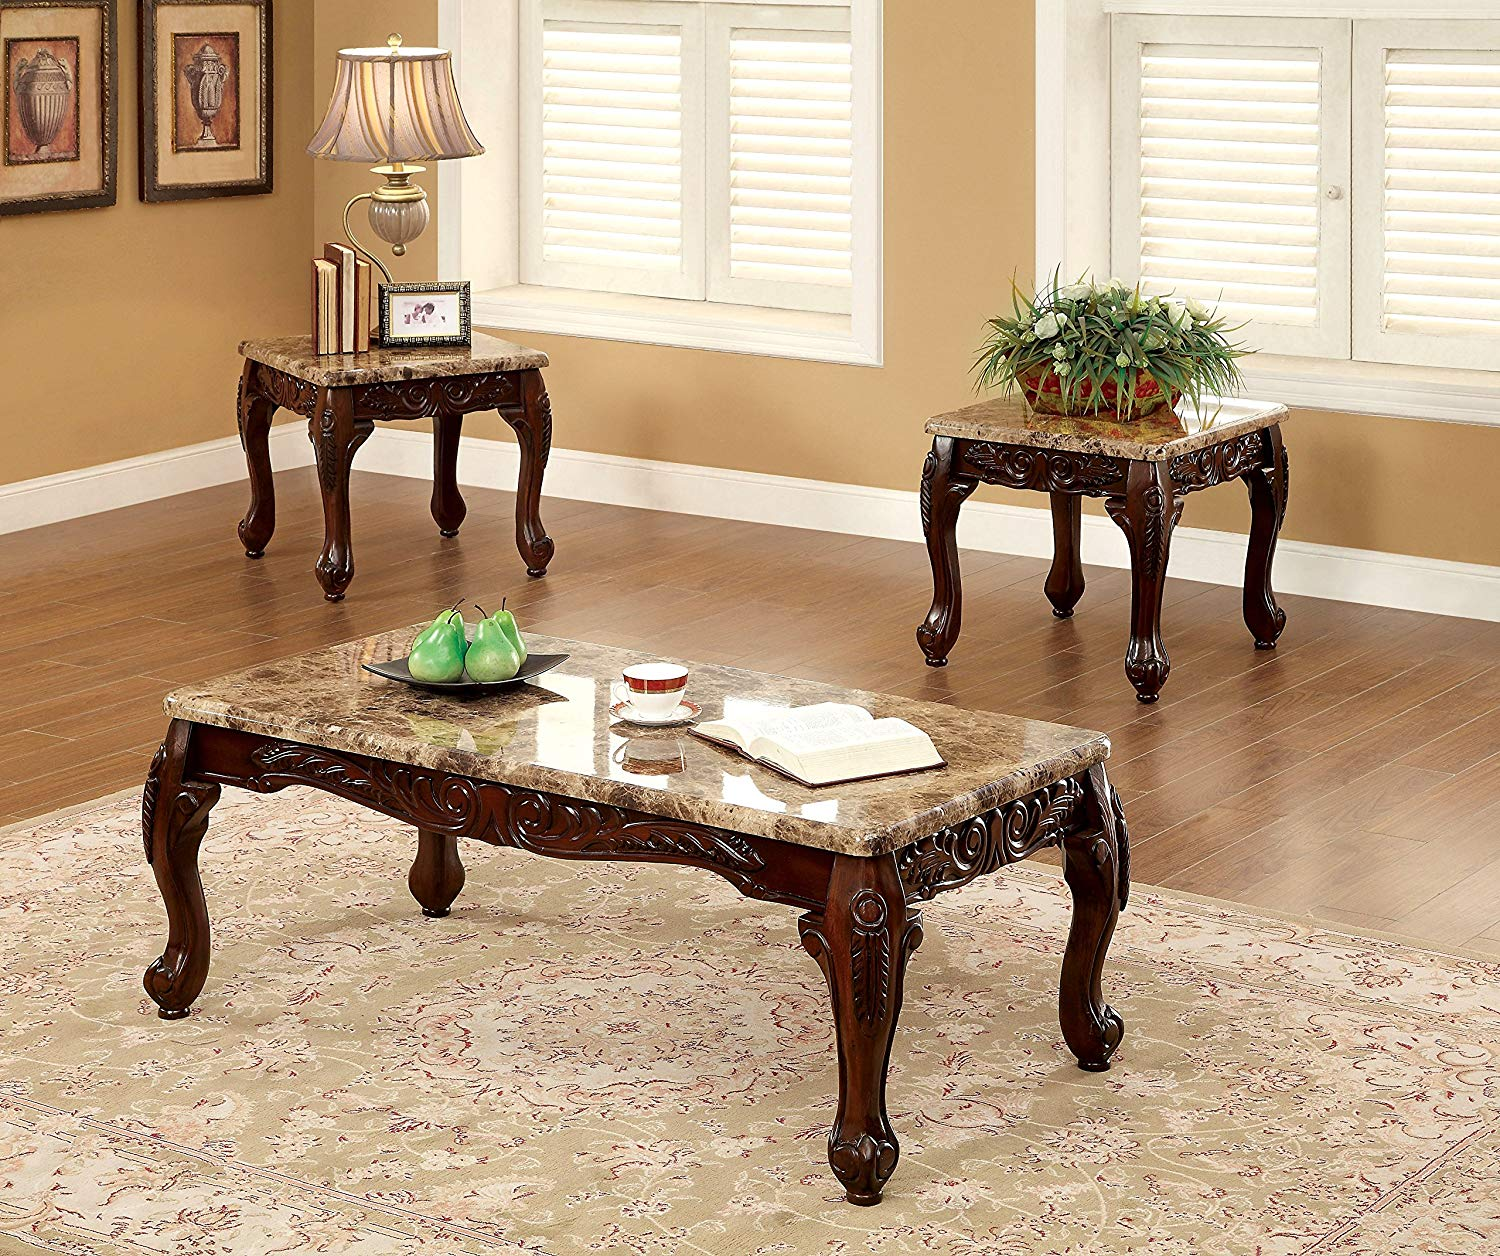 furniture america beltran piece traditional faux harrietta accent table set marble top tables dark oak kitchen dining bar height red nesting side for living room small metal end